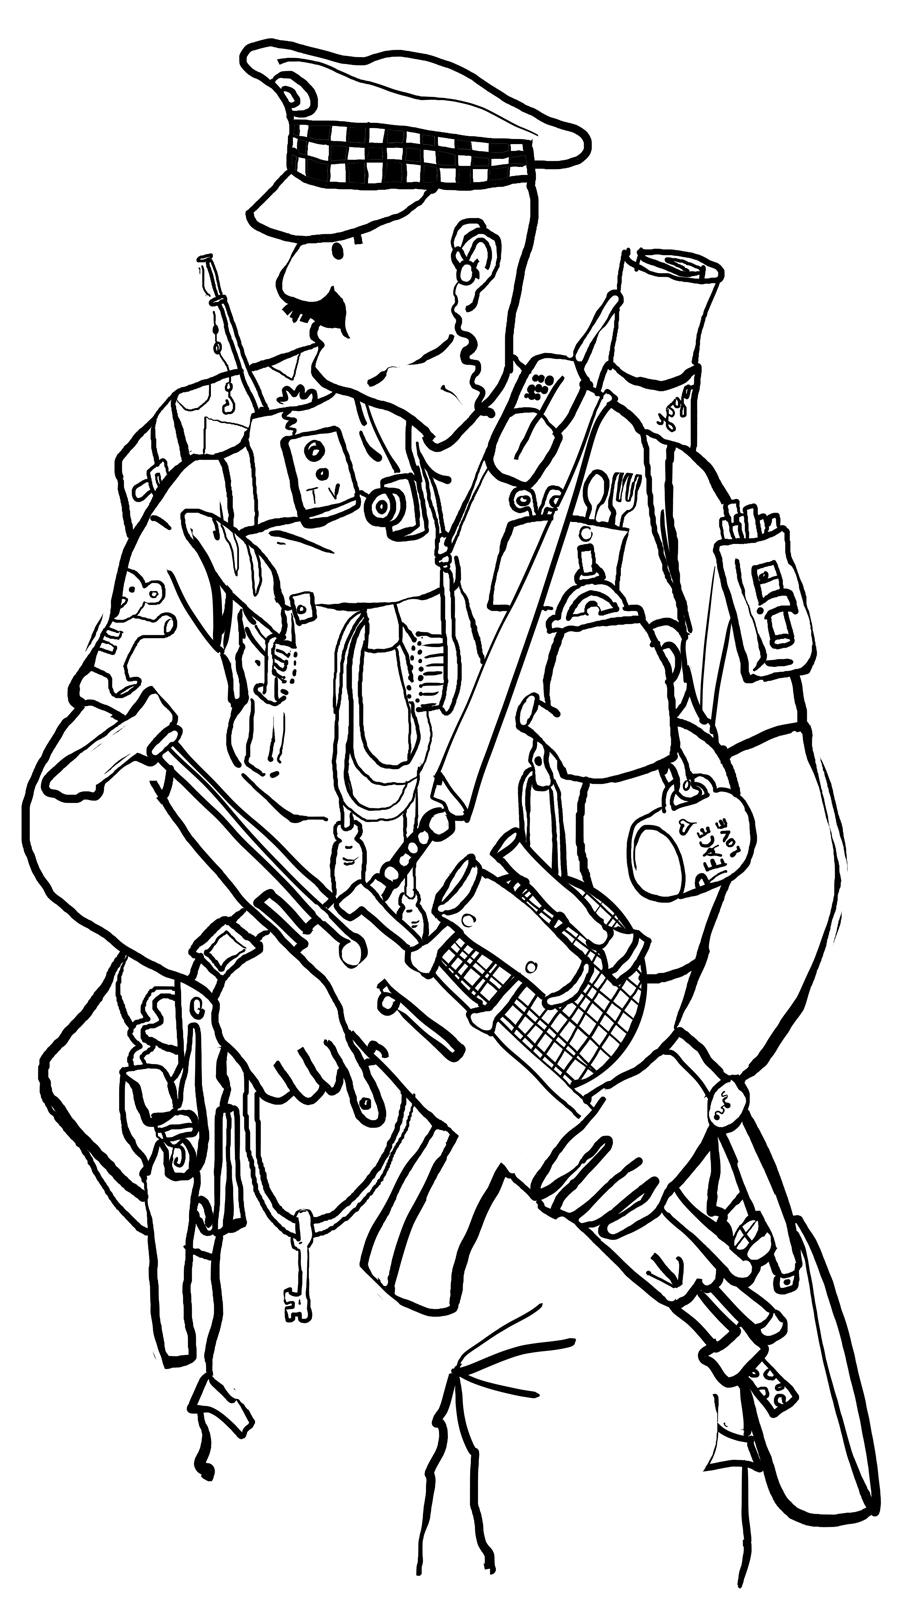 Free Kids Police Officer Coloring Pages